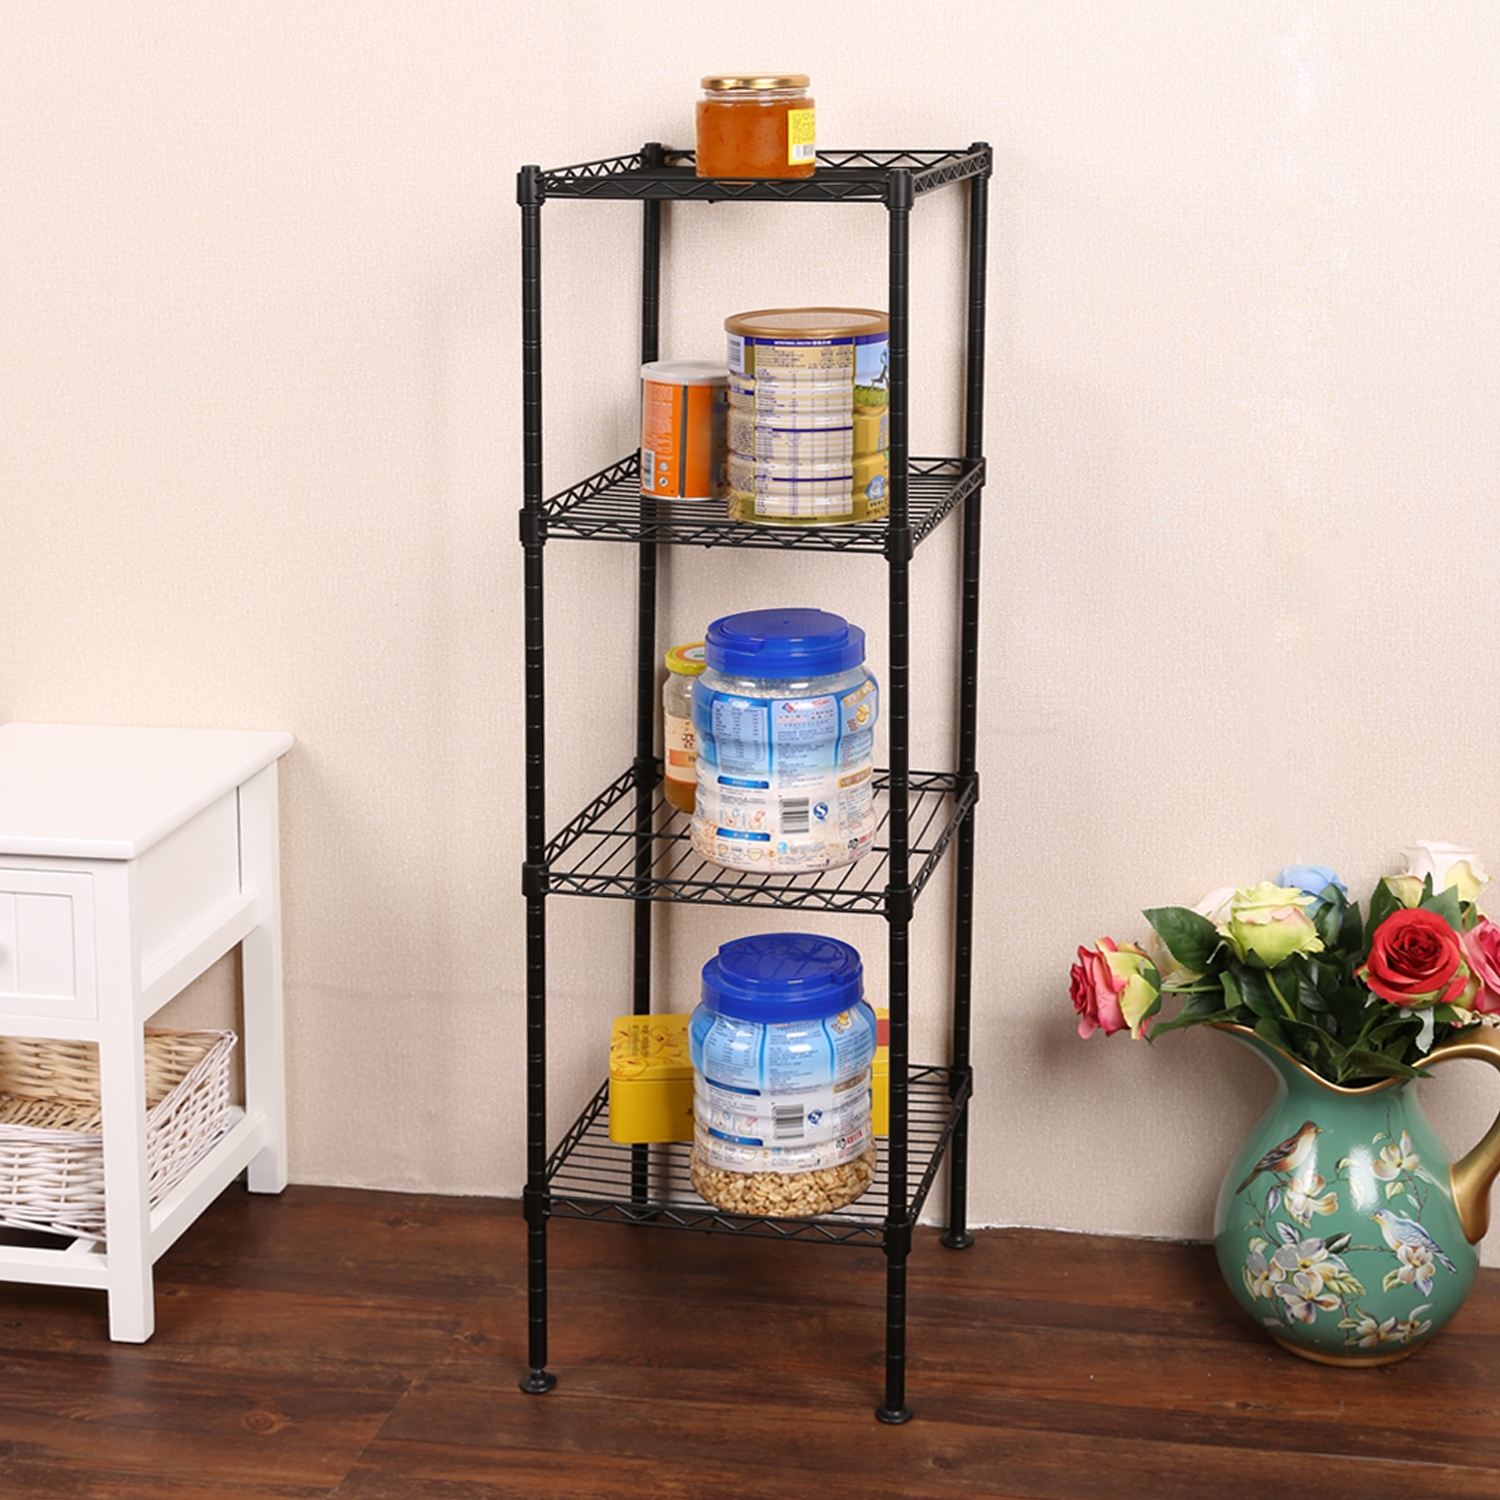 Kitchen Bathroom Shelf 4/5Tier Multifunctional Storage Display Rack Shelving